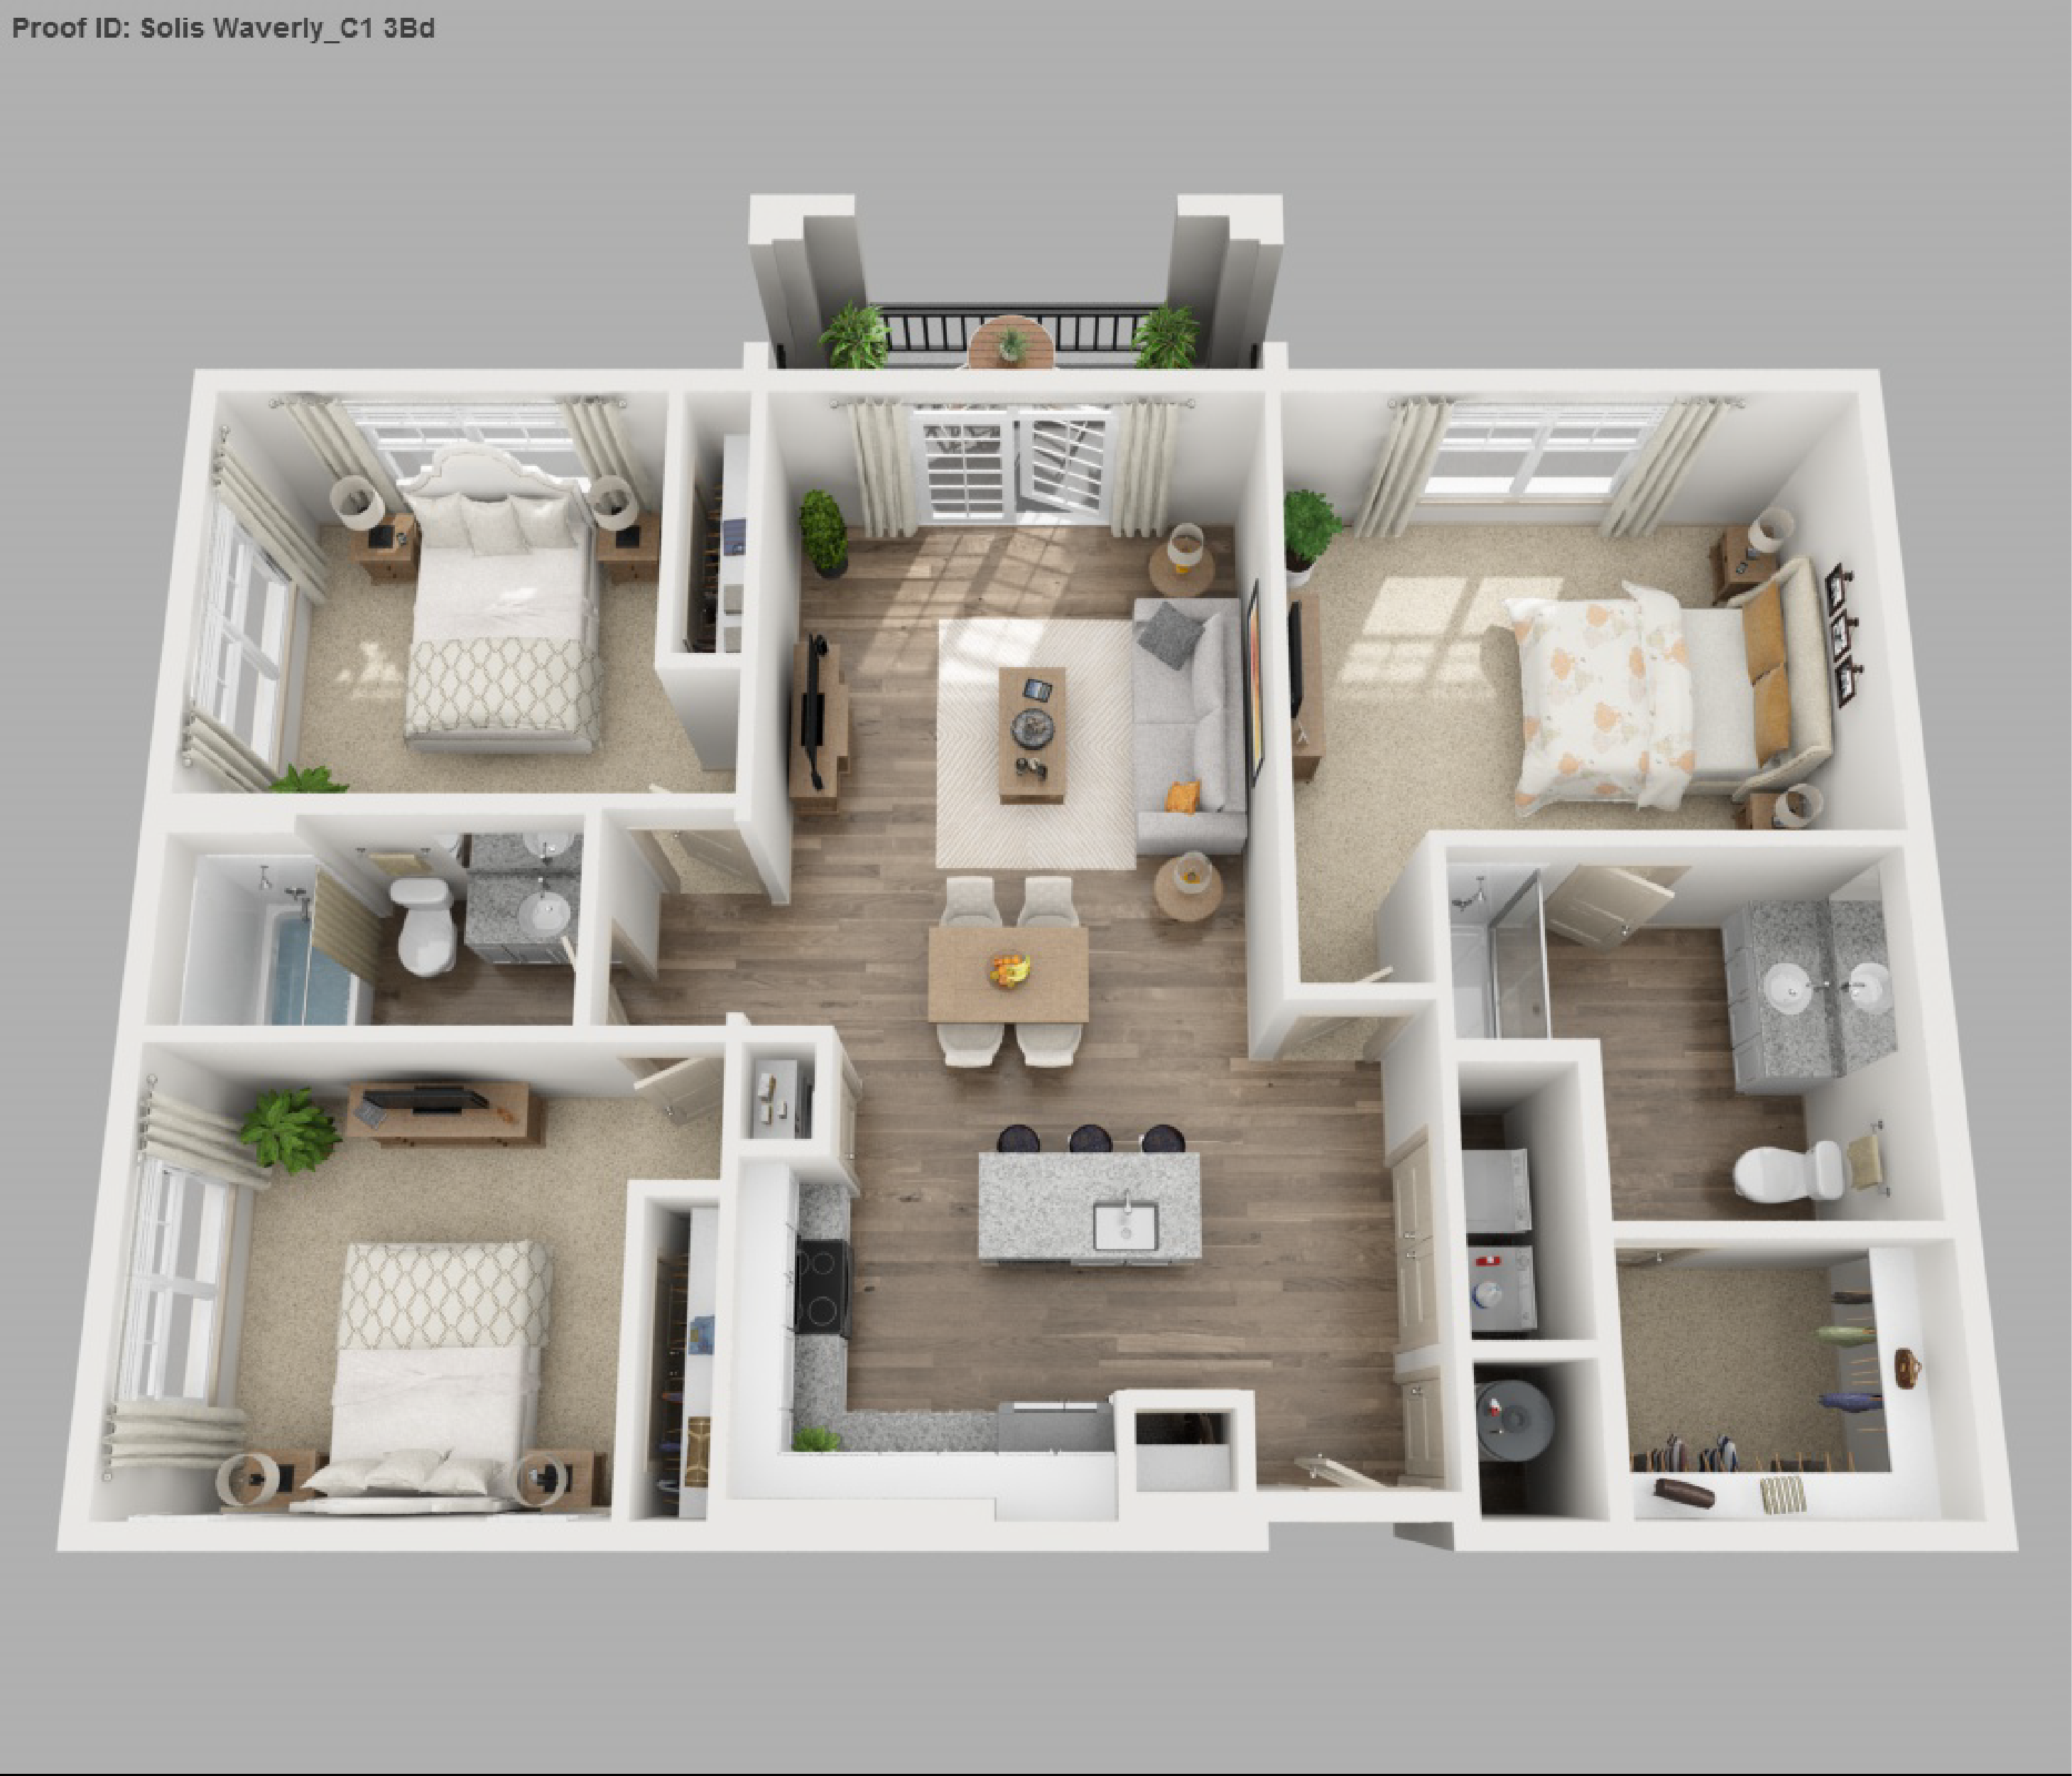 C1 3 Bedroom View Floor Plan